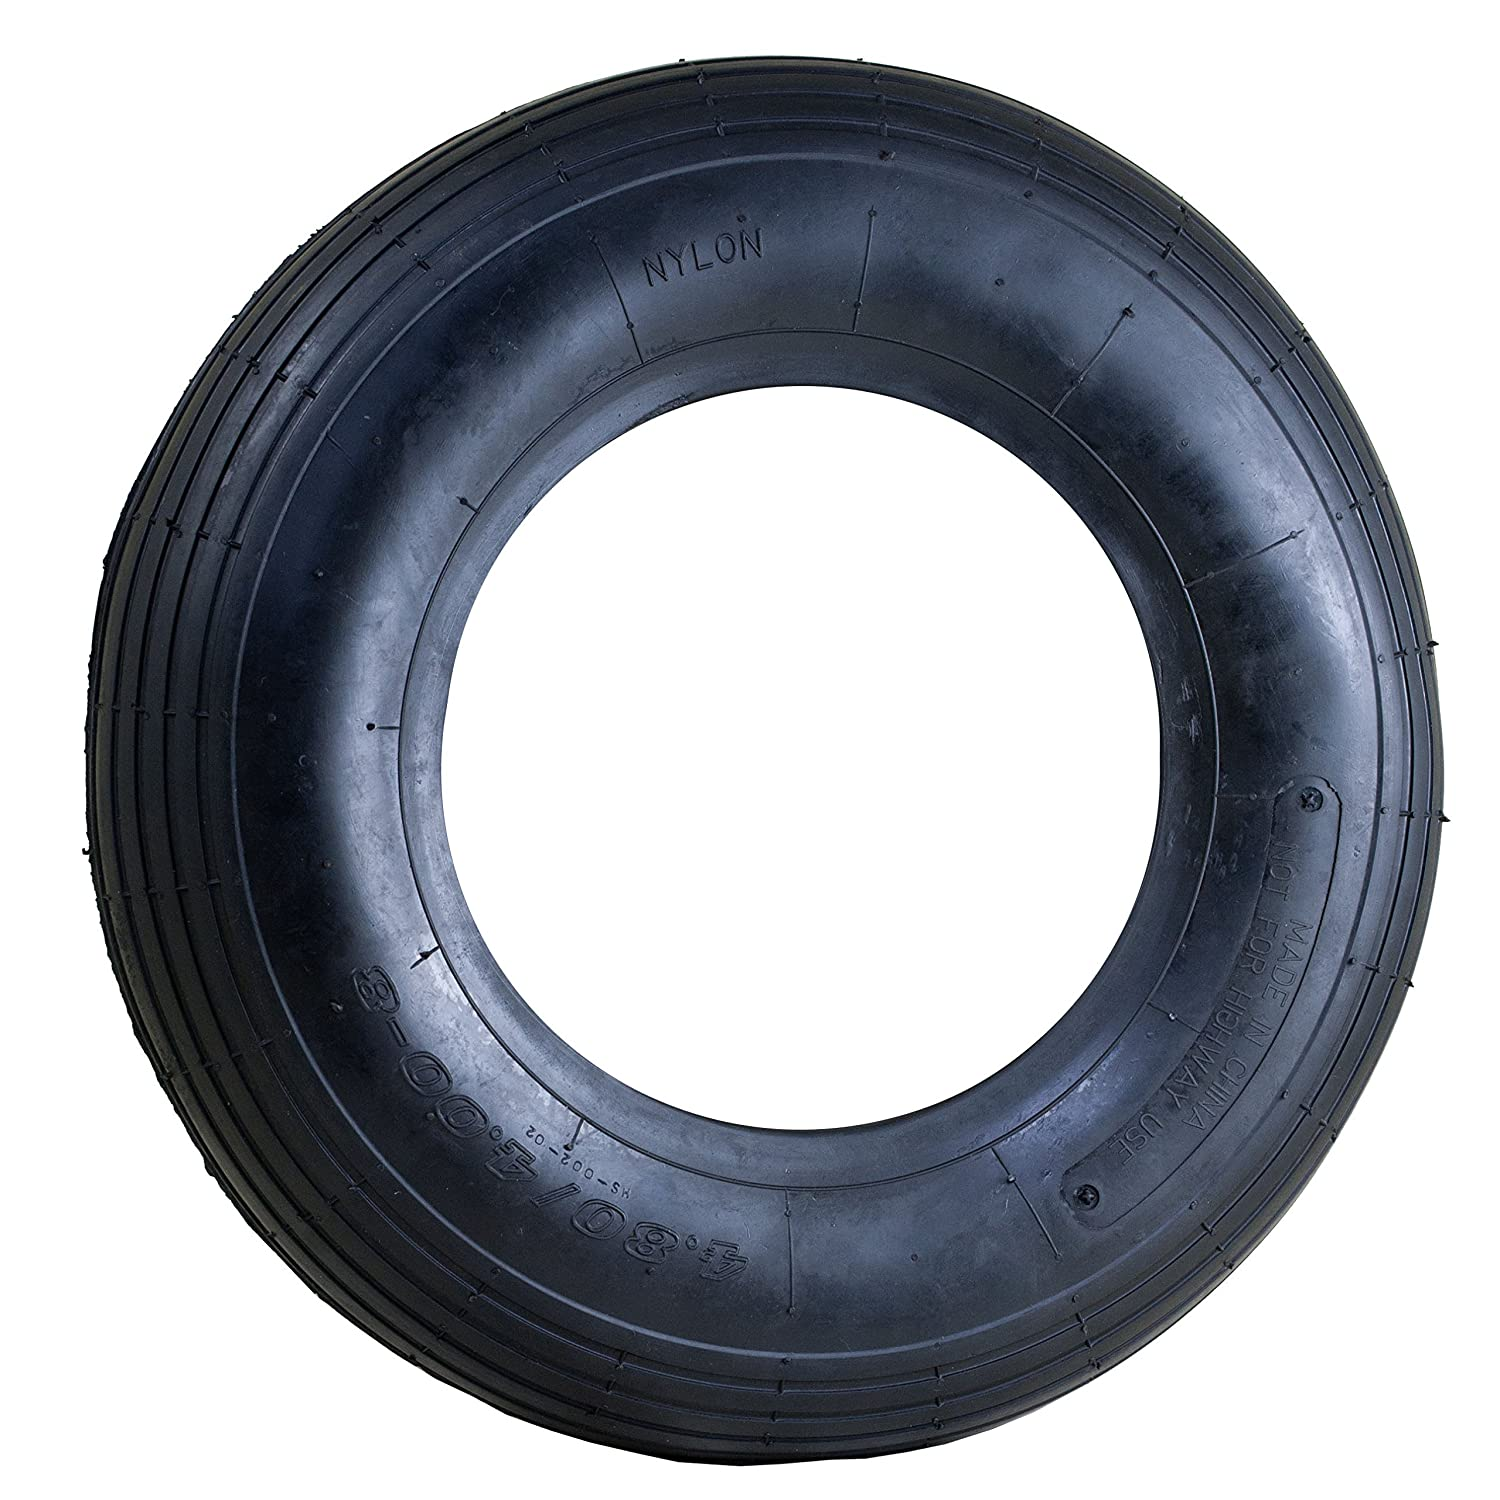 "Amazon 4 80 4 00 8"" Replacement Pneumatic Wheel Tire and Tube"